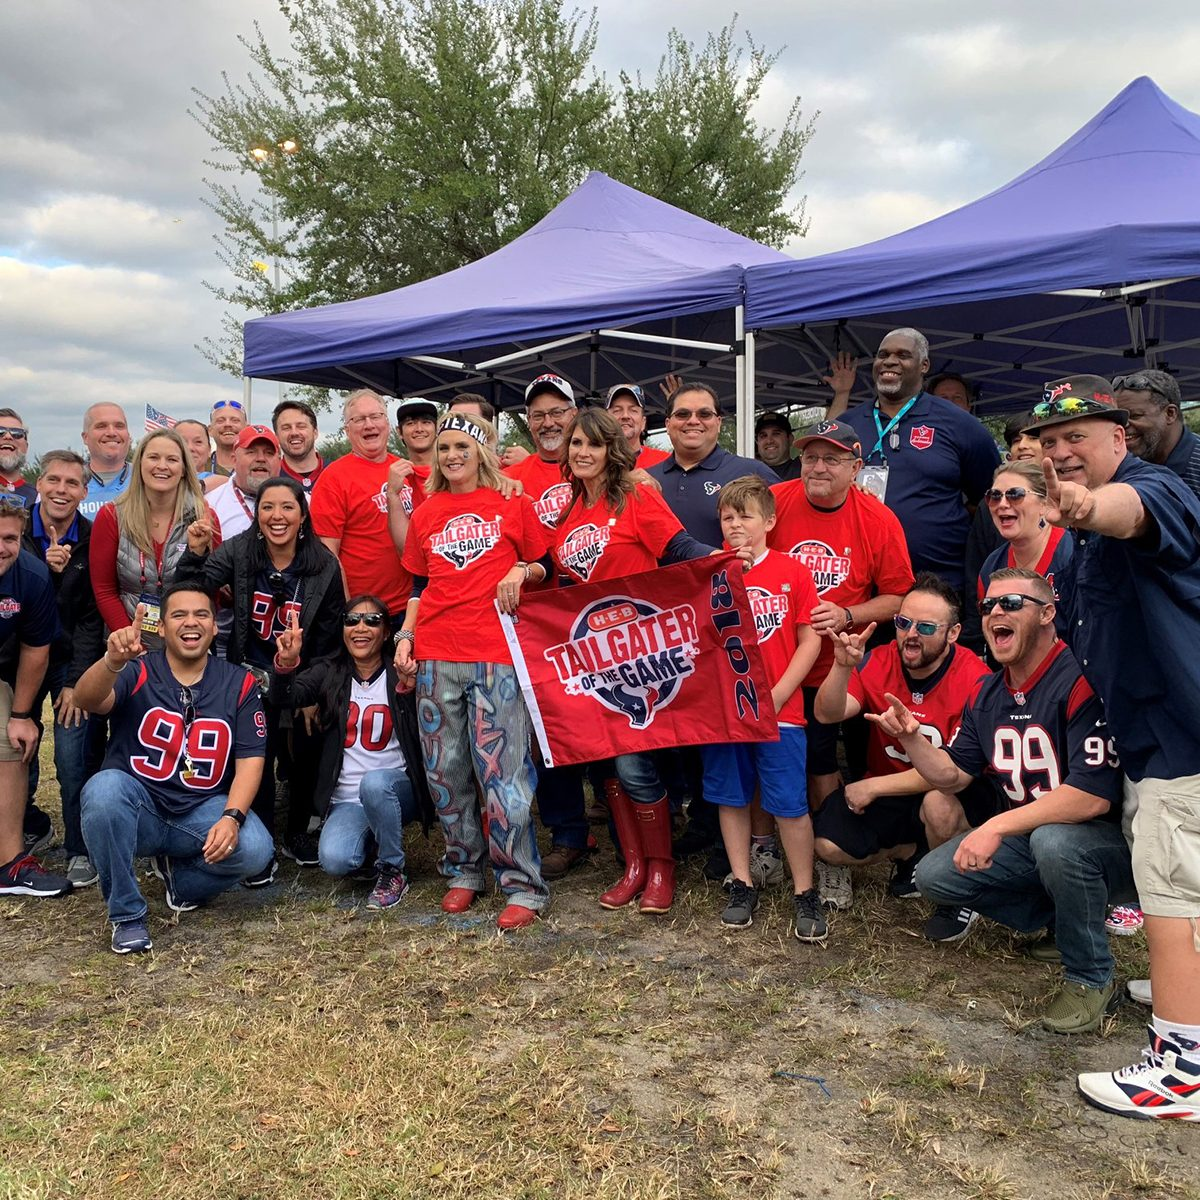 Houston Texans fans posing for picture